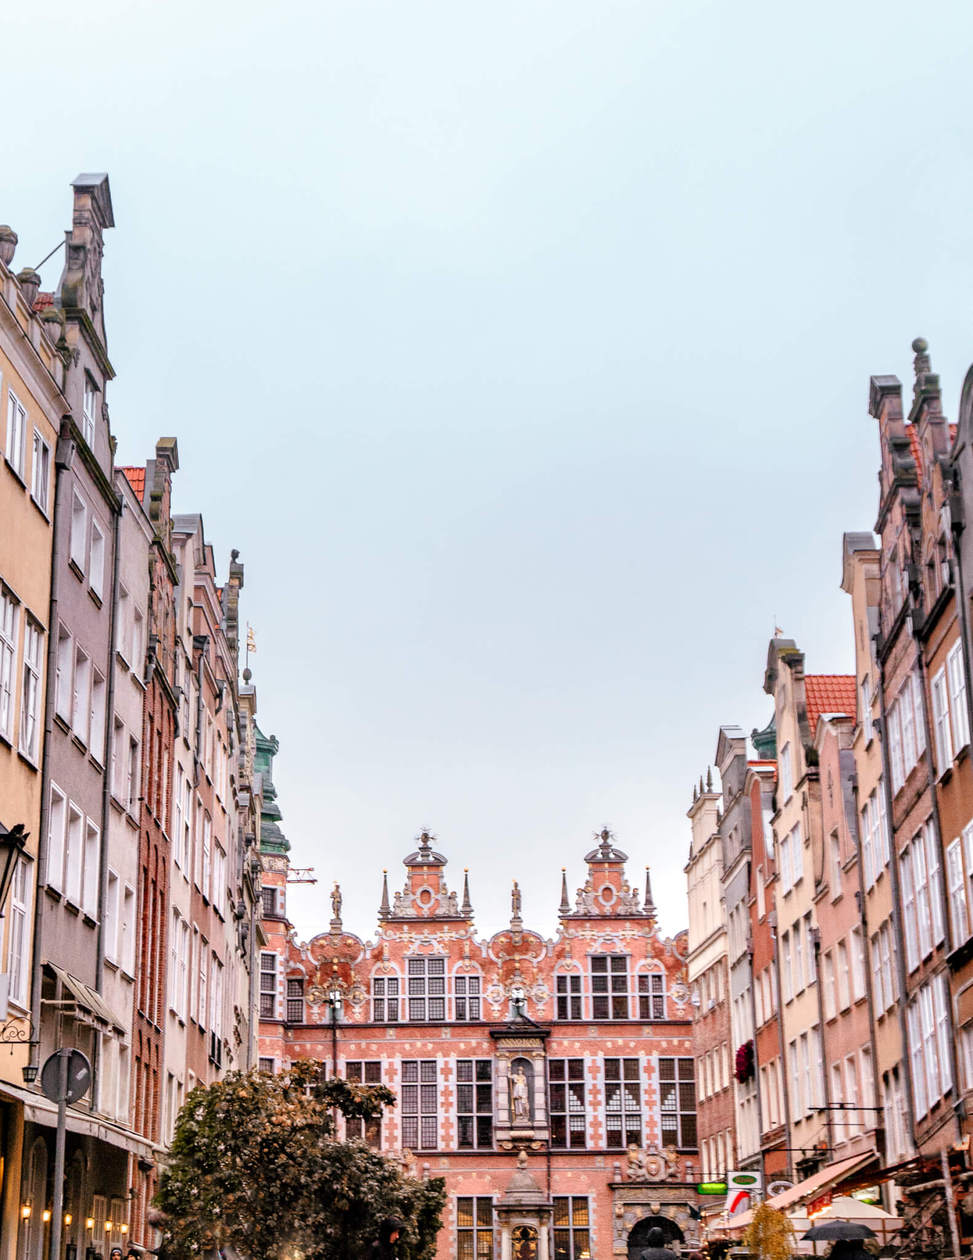 Piwna Street // Everything you need to know to spend a weekend in Old Town Gdansk. Discover what to do, where to stay, which bars to visit, plus tips for visiting and tons of Gdansk photography to inspire your trip. Click to discover Poland's Pearl of the North.